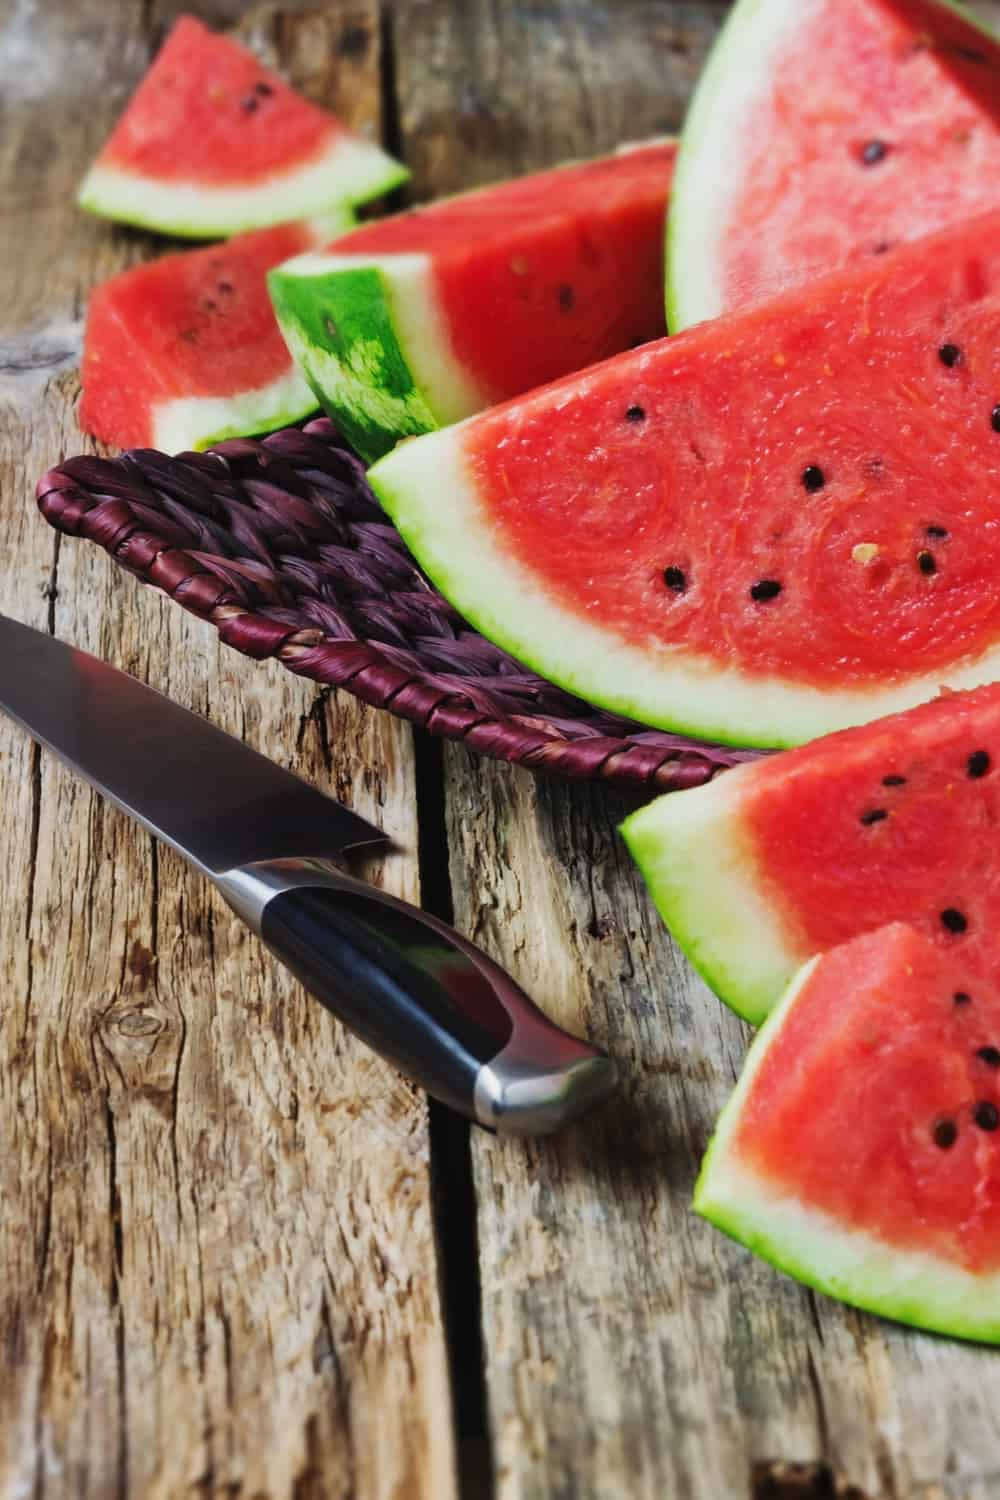 The Risk of Consuming Expired Watermelon